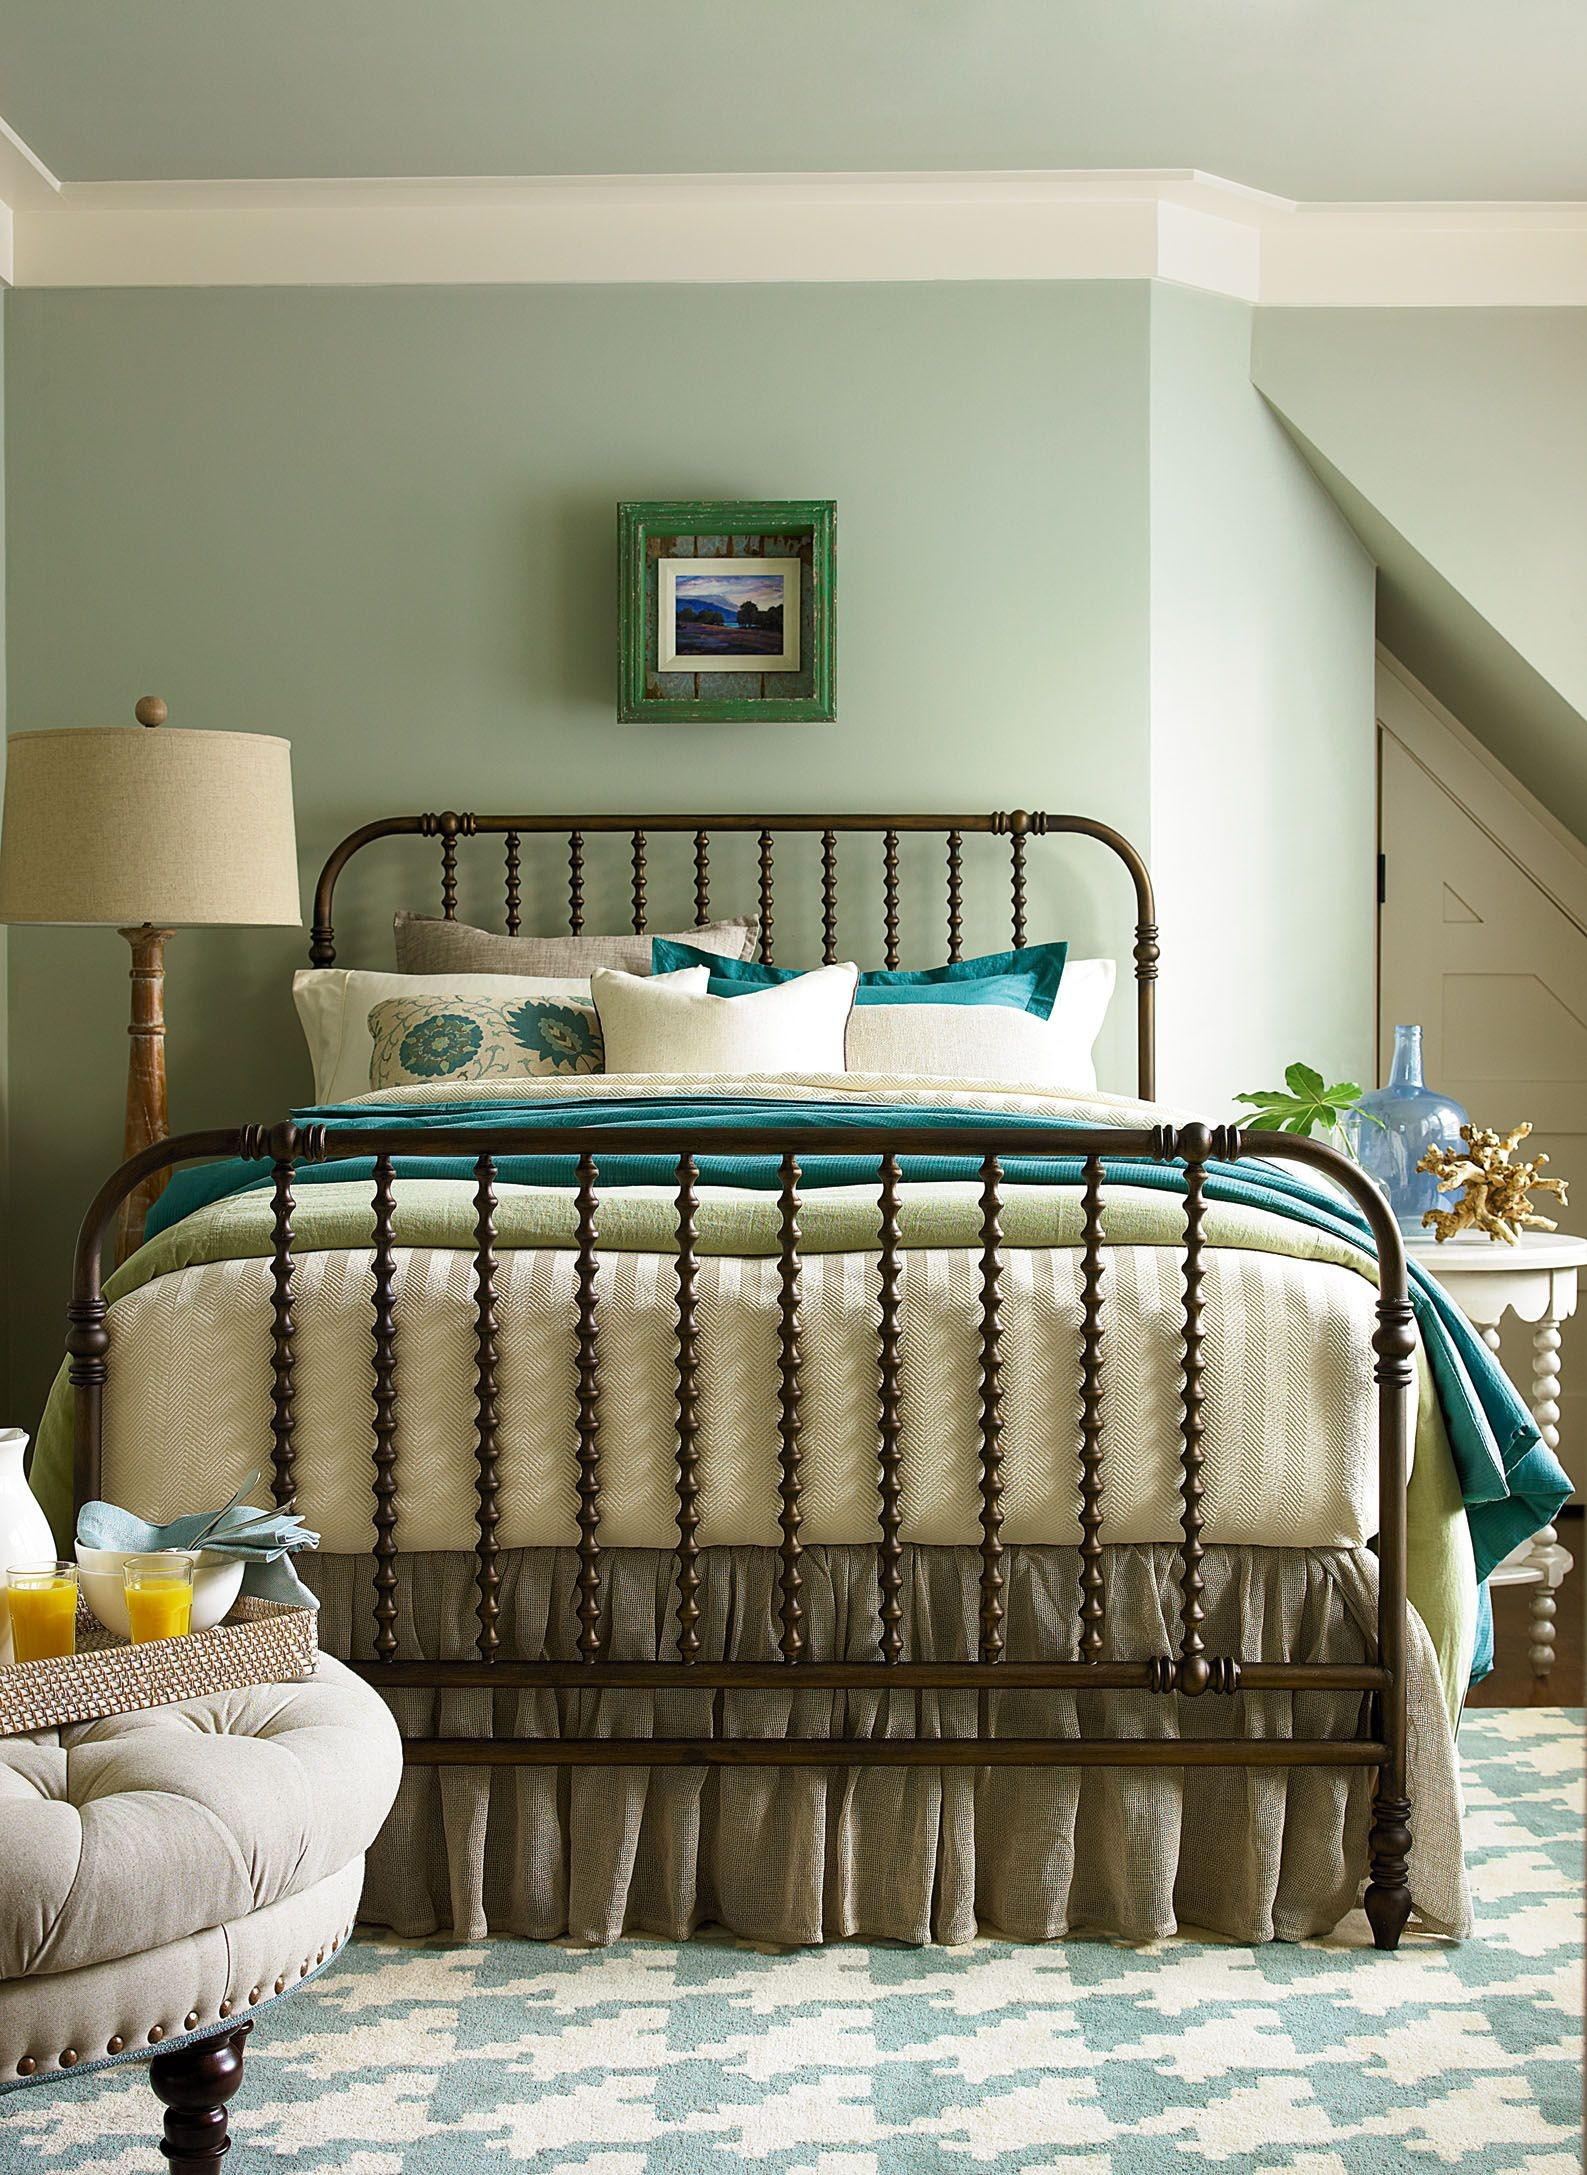 Riverhouse River Bank The Guest Bedroom Set From Paula Deen 393310 Coleman Furniture